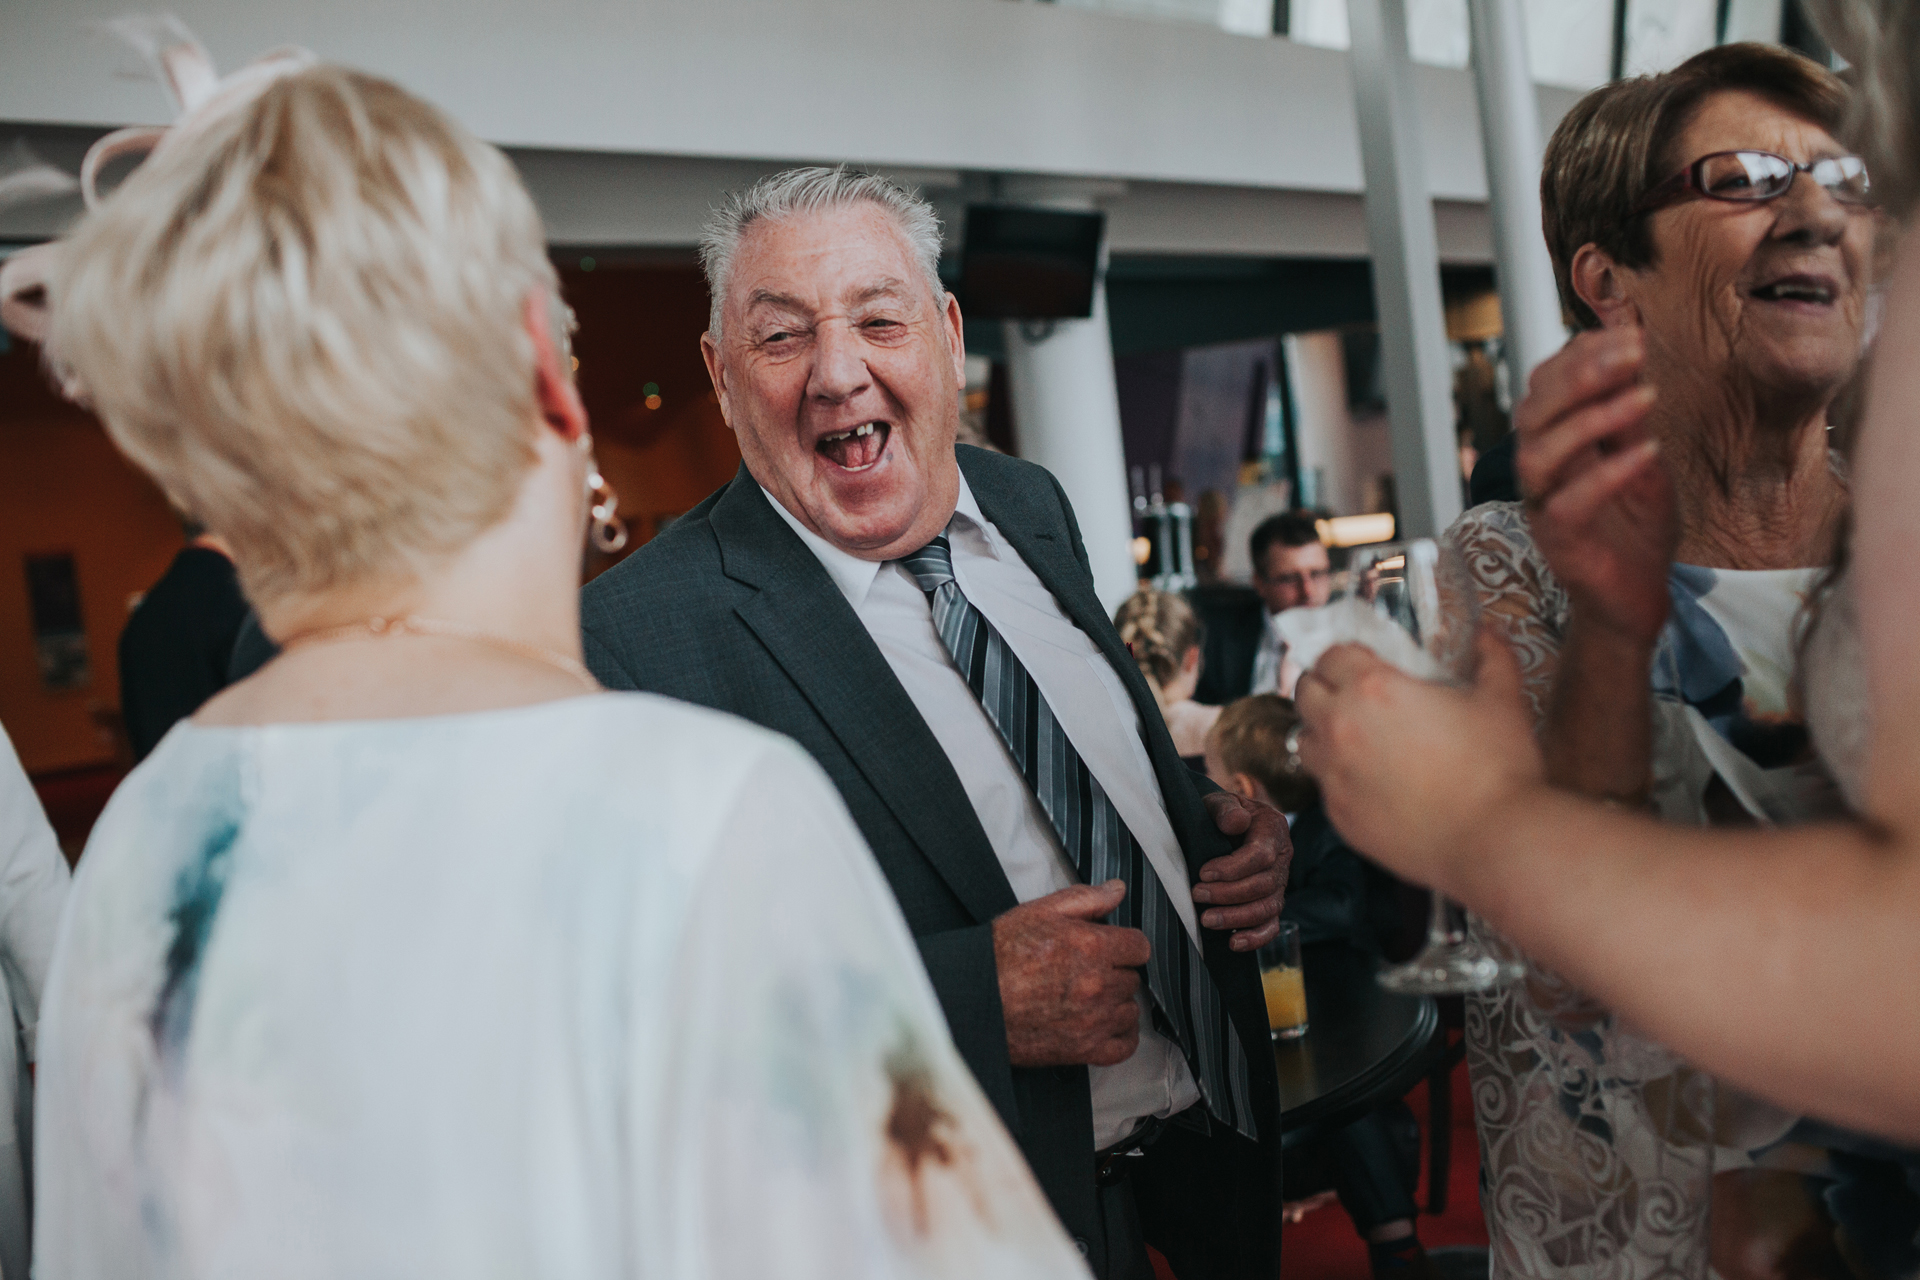 Wedding guests roars with laughter.